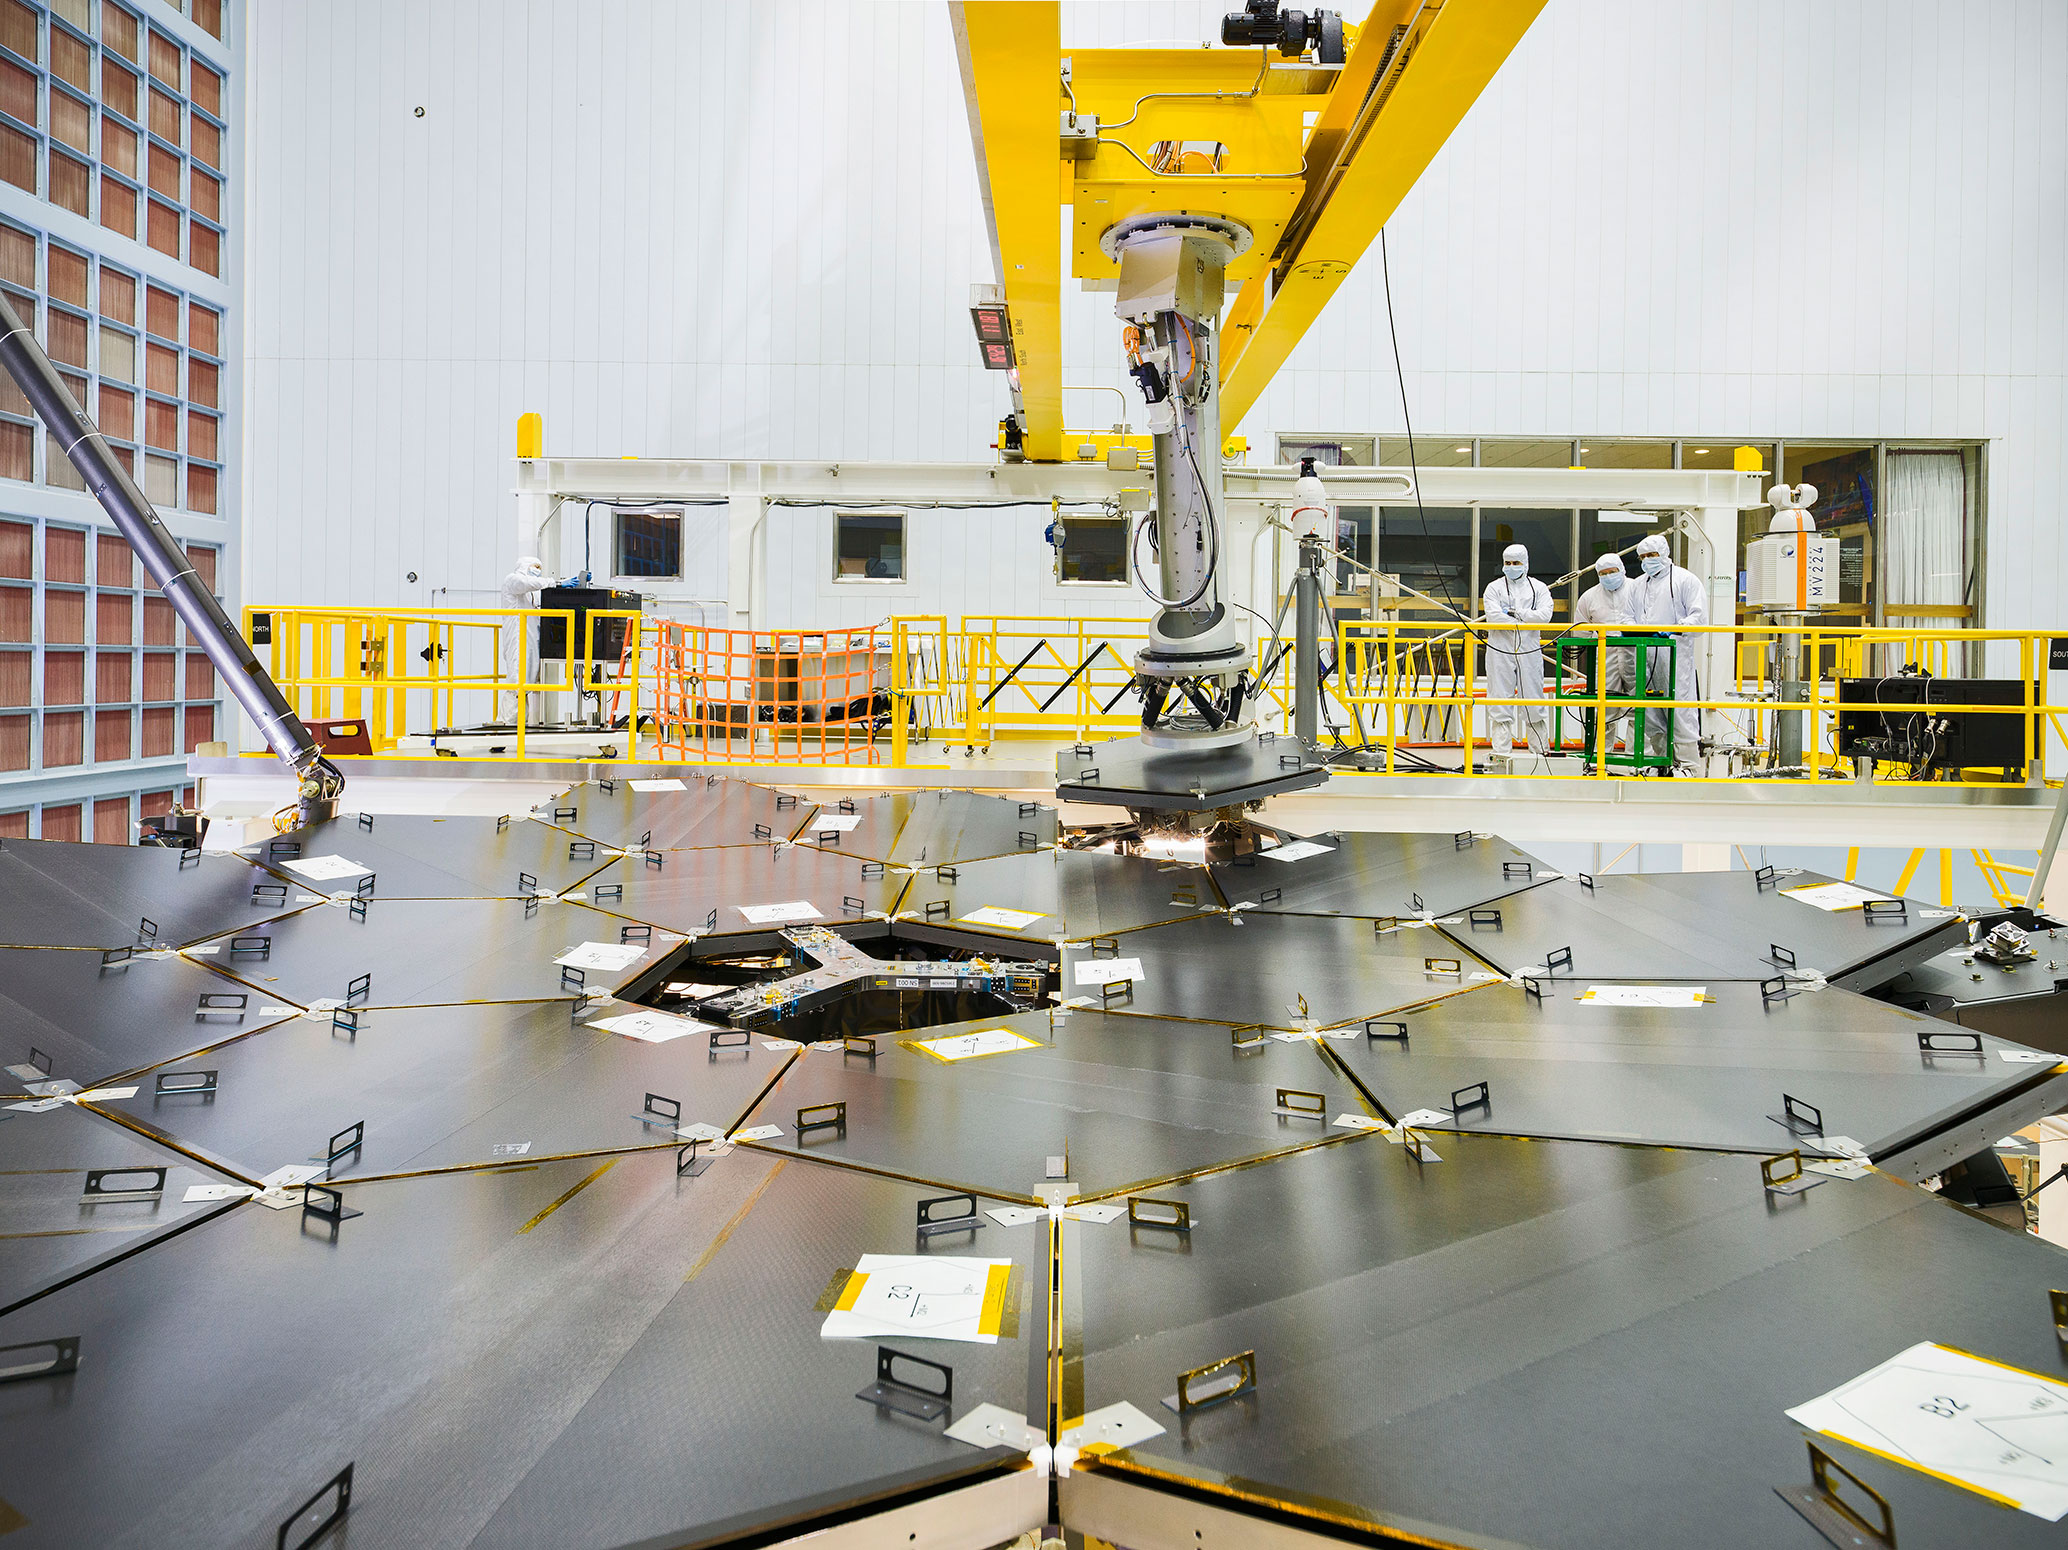 Inside a massive clean room at NASA's Goddard Space Flight Center in Greenbelt, Maryland the James Webb Space Telescope team used a robotic am to install the last of the telescope's 18 mirrors onto the telescope structure. - Image Credits: NASA/Chris Gunn